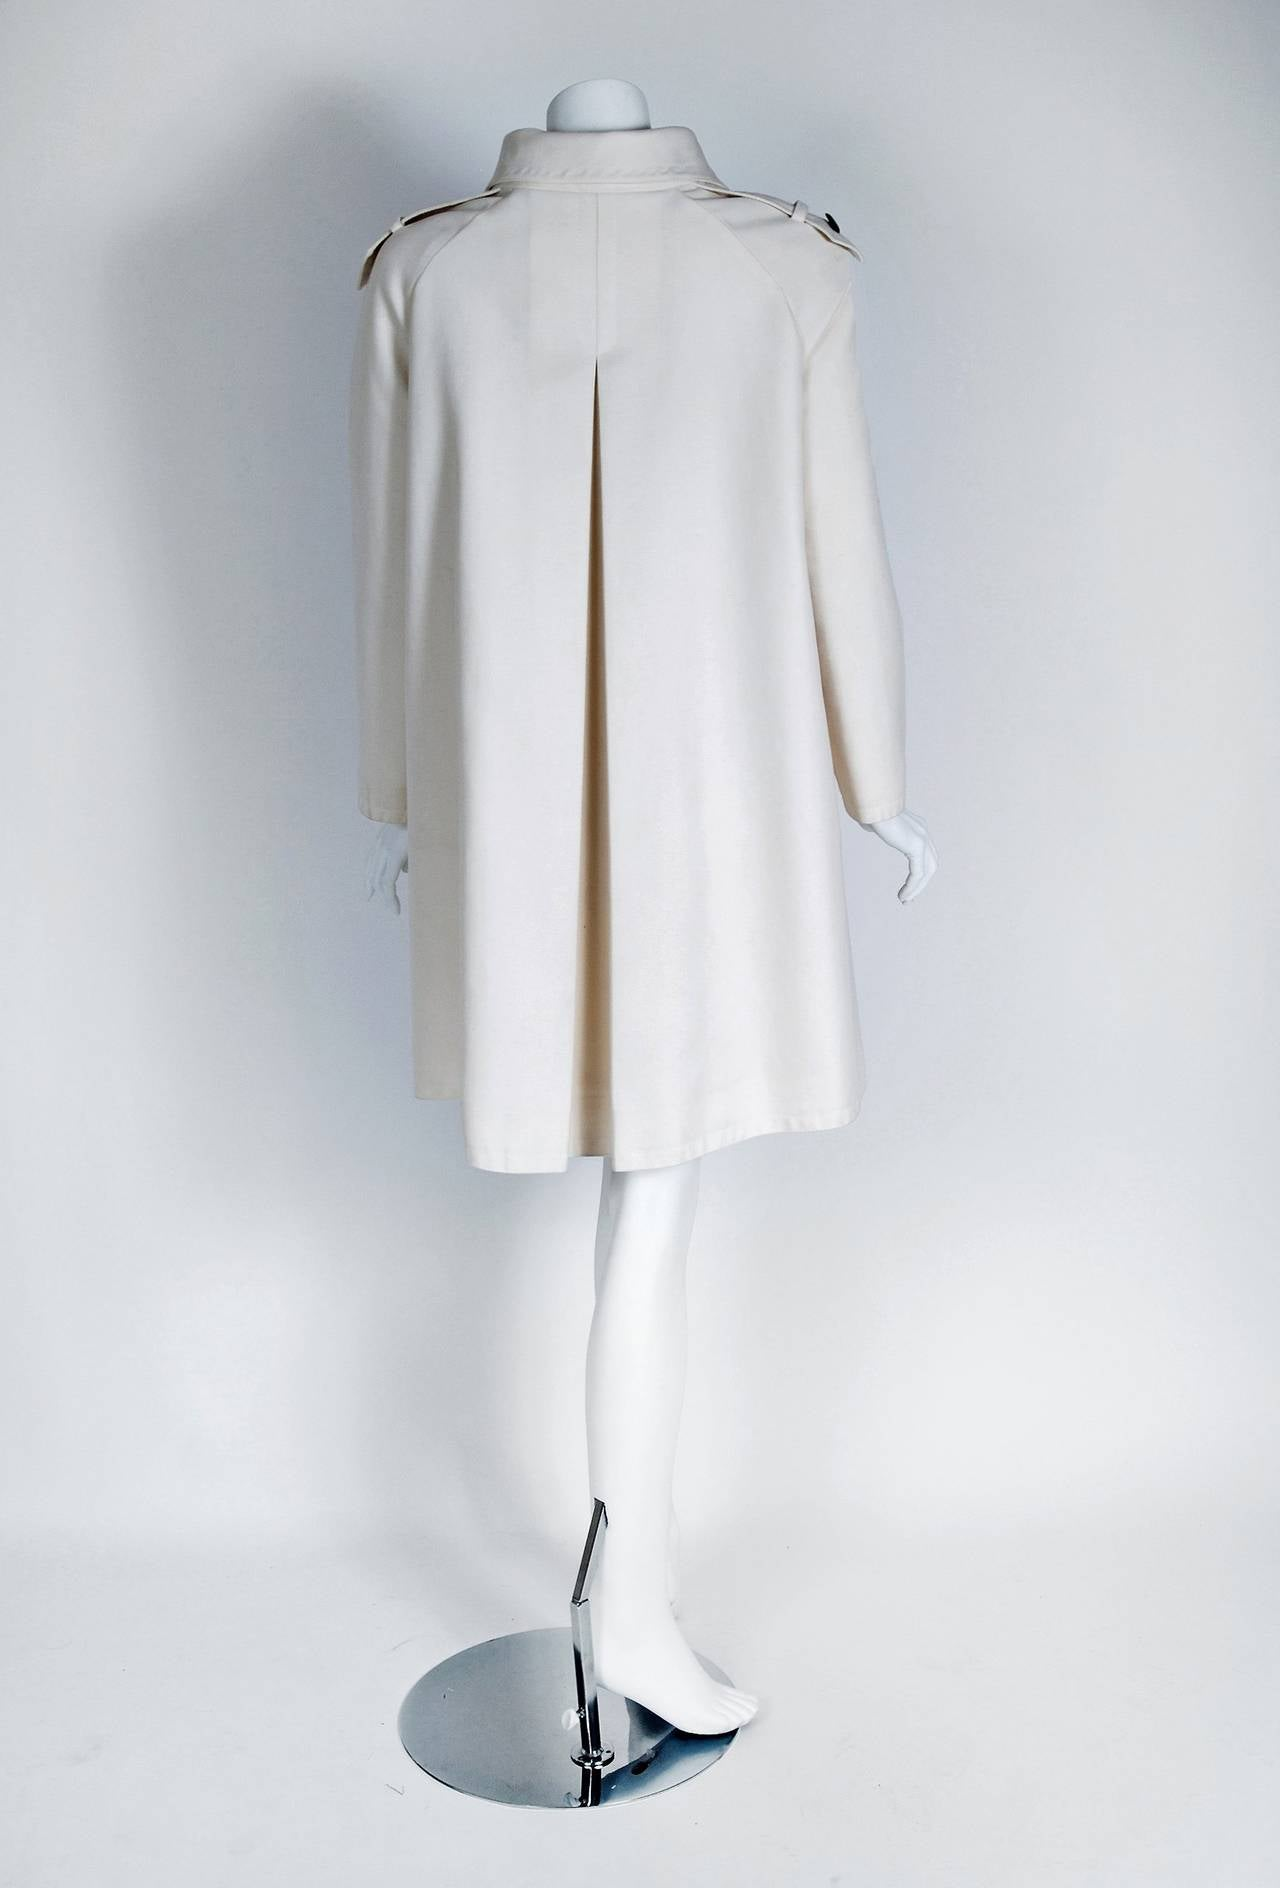 1968 Pierre Cardin Ivory White Cotton-Twill Mod Space-Age Pockets Trench Jacket 5